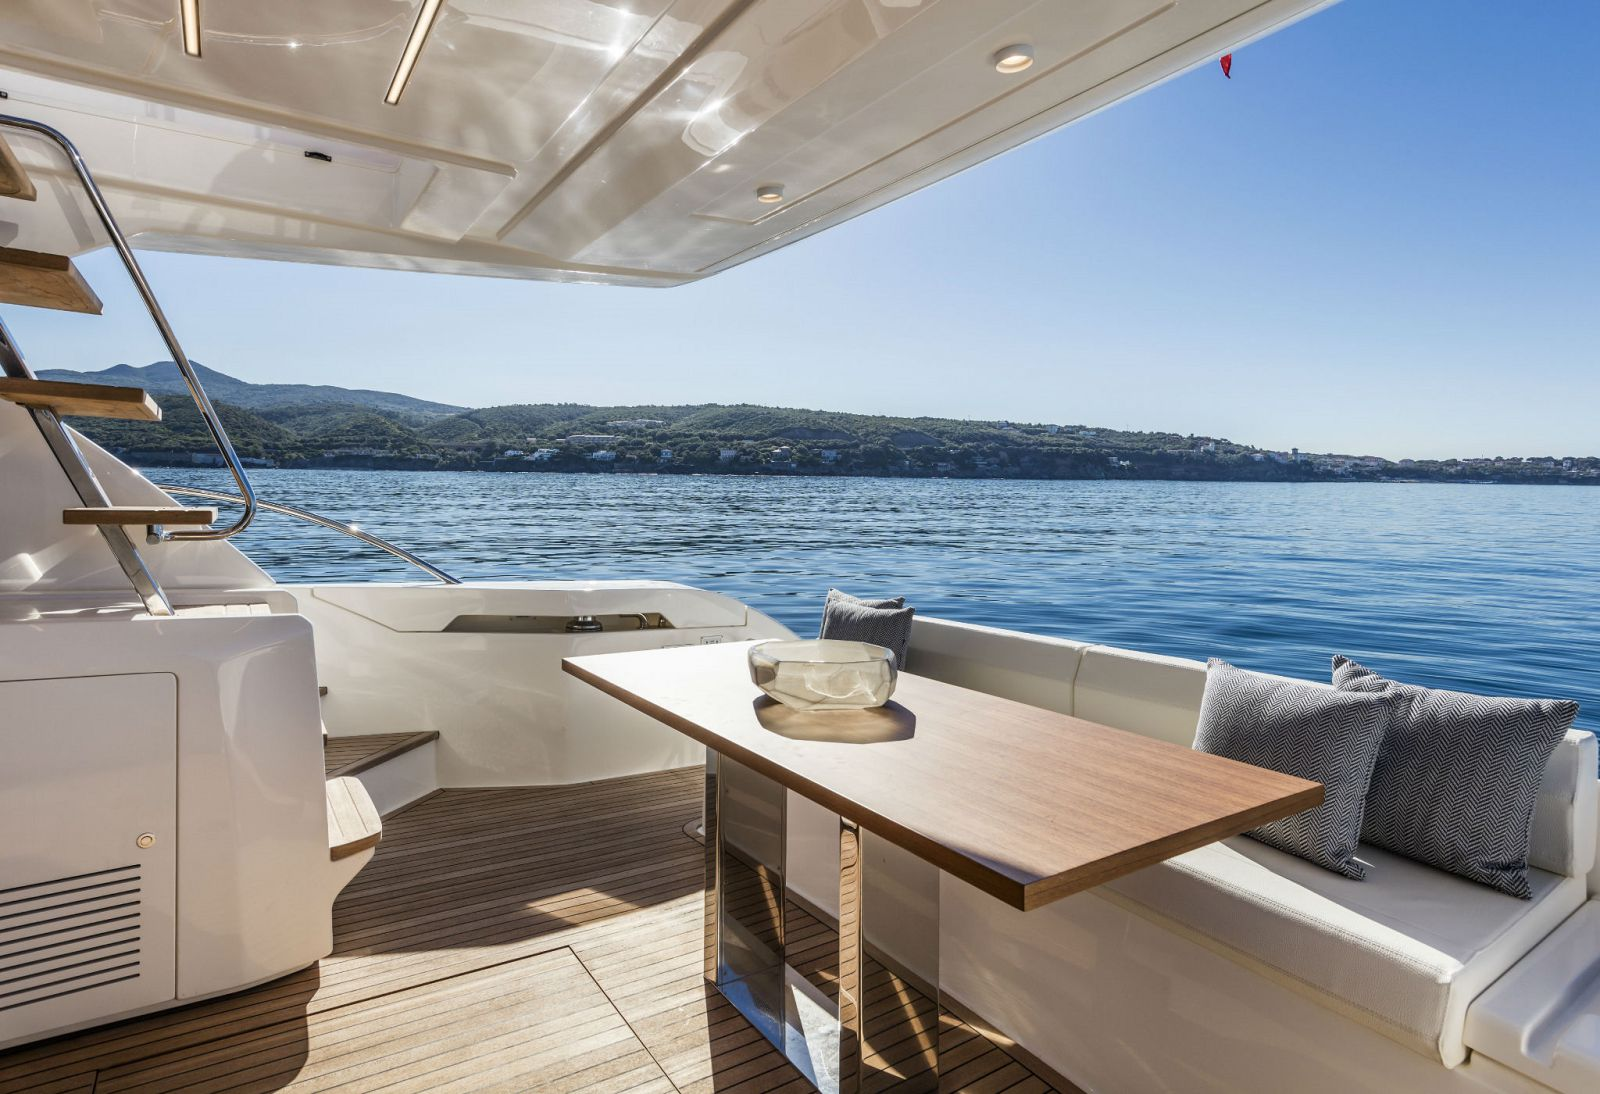 Ferretti Yachts 550 Exterior - New Luxury Yacht for Sale >